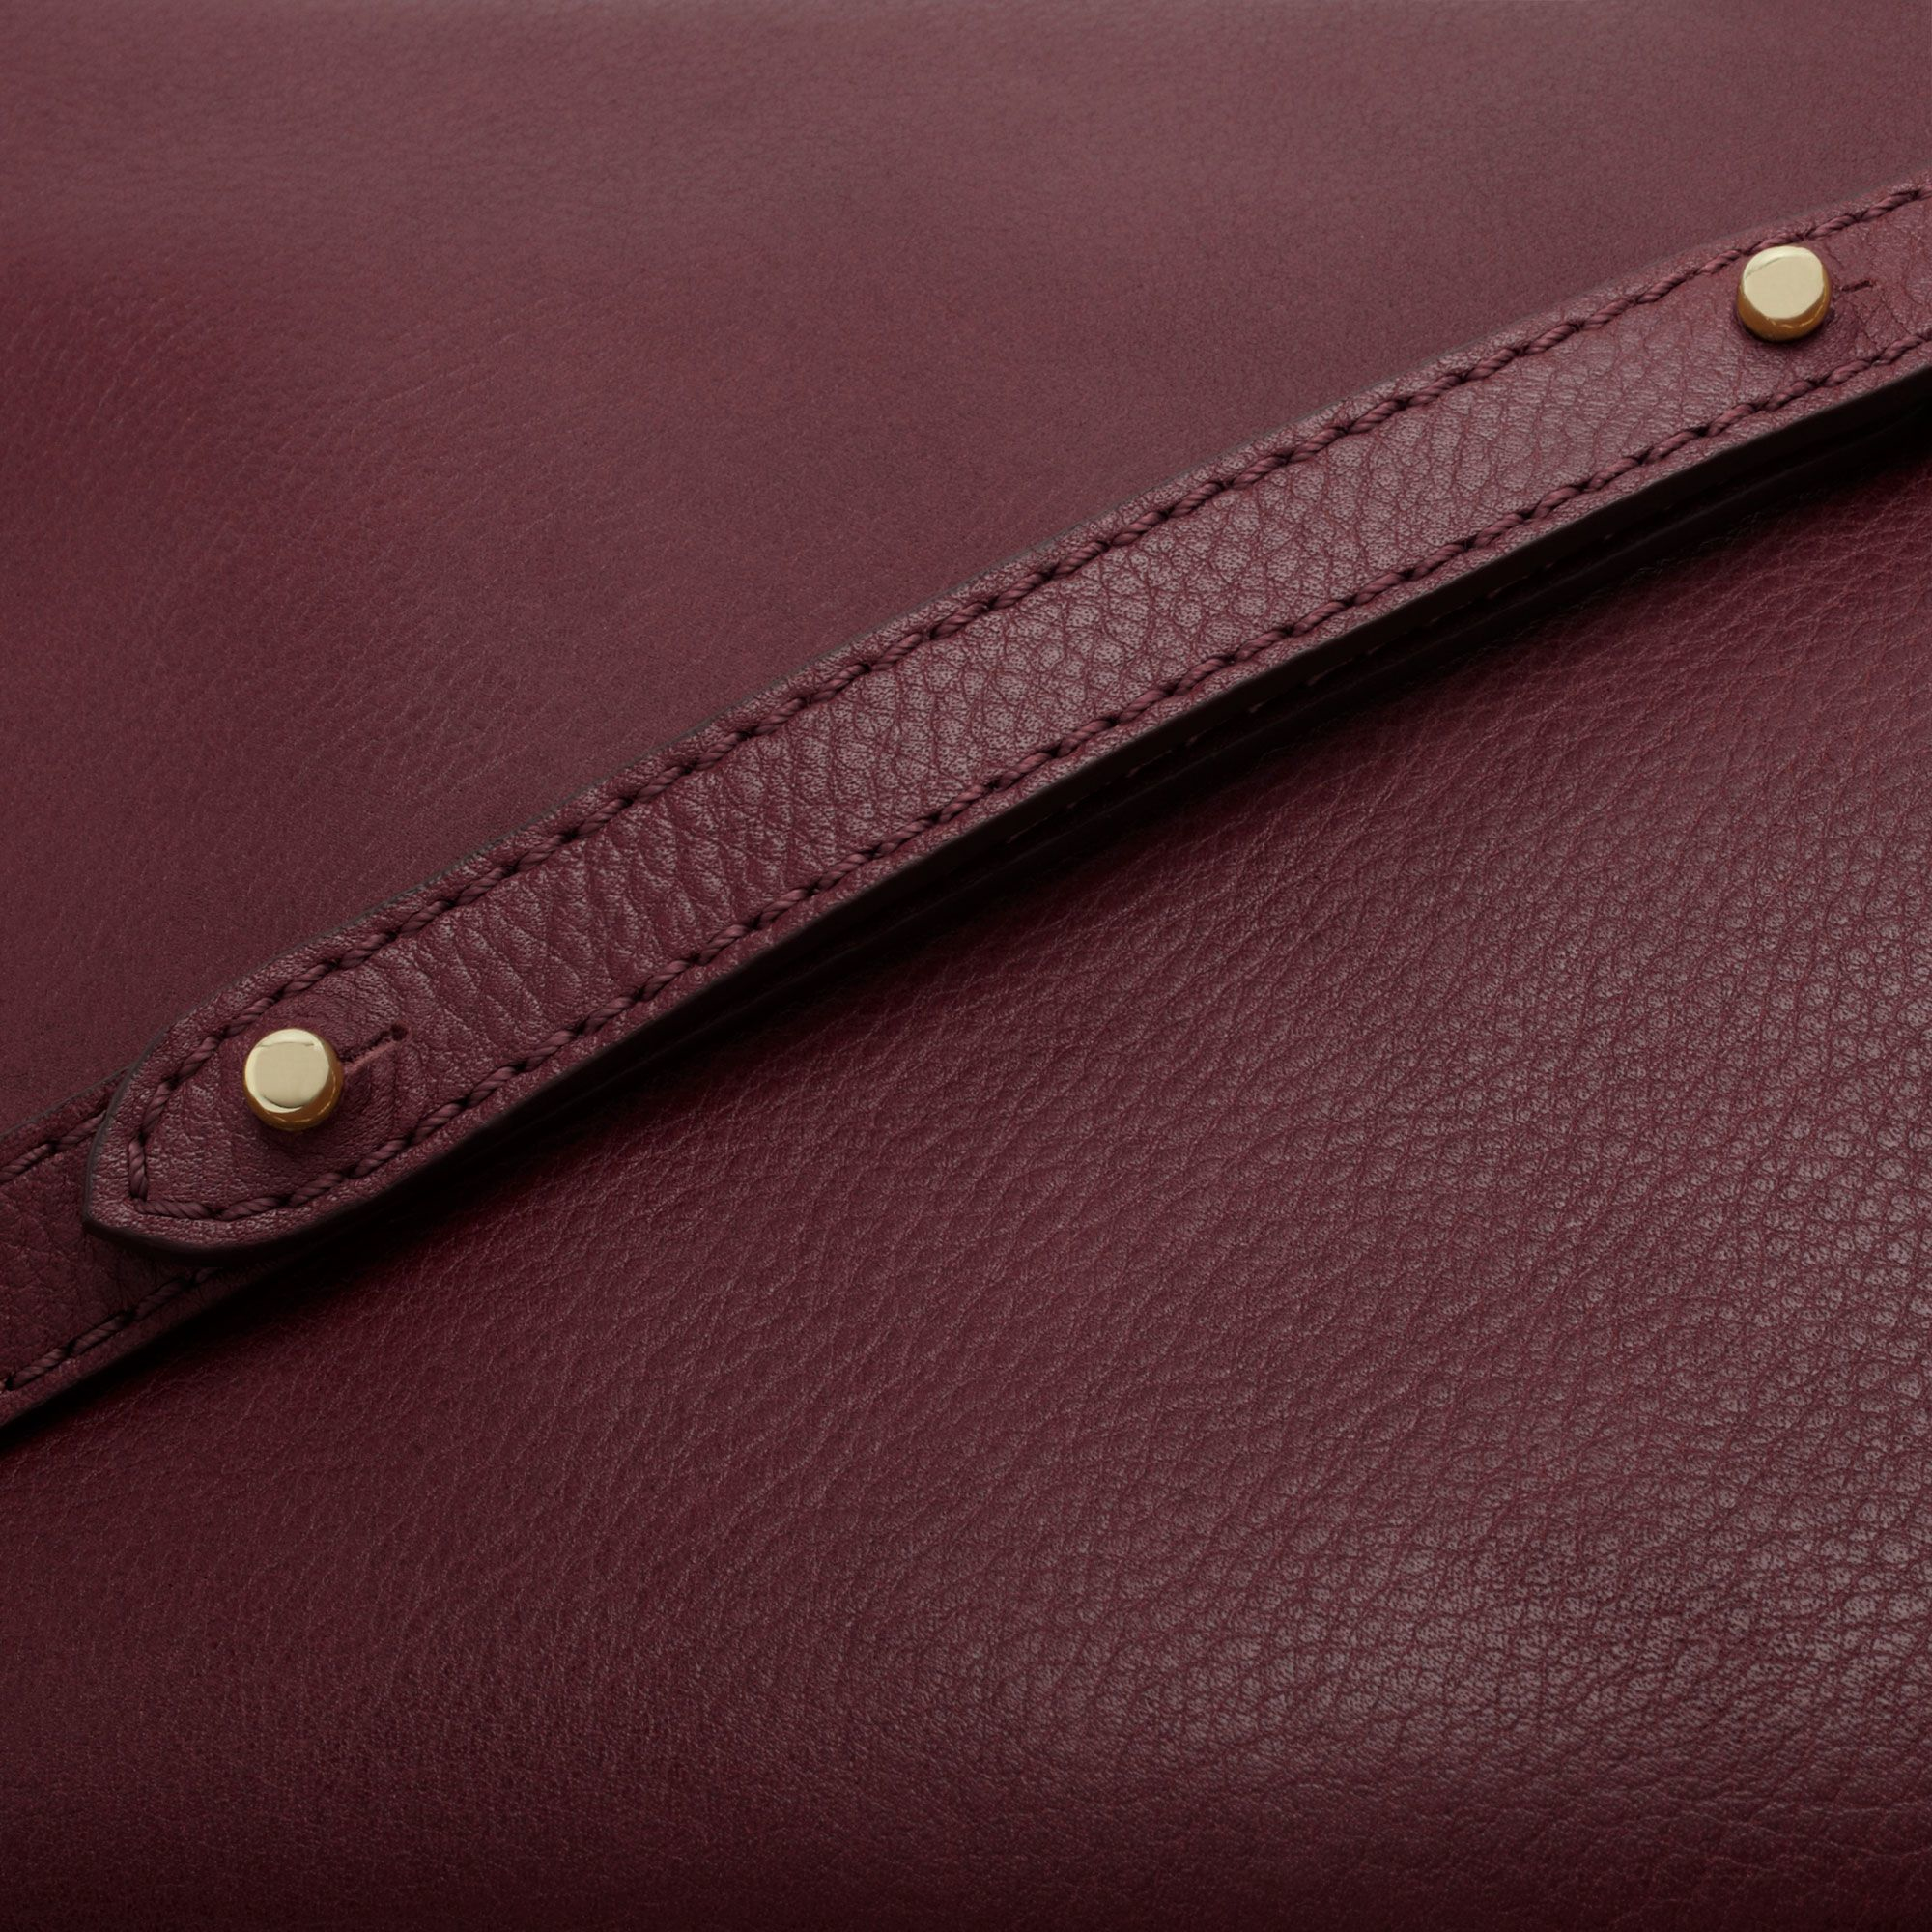 d47facb27cb6 ... best mulberry tessie leather crossbody bag lyst mulberry tessie satchel  bag in brown 9ef85 64334